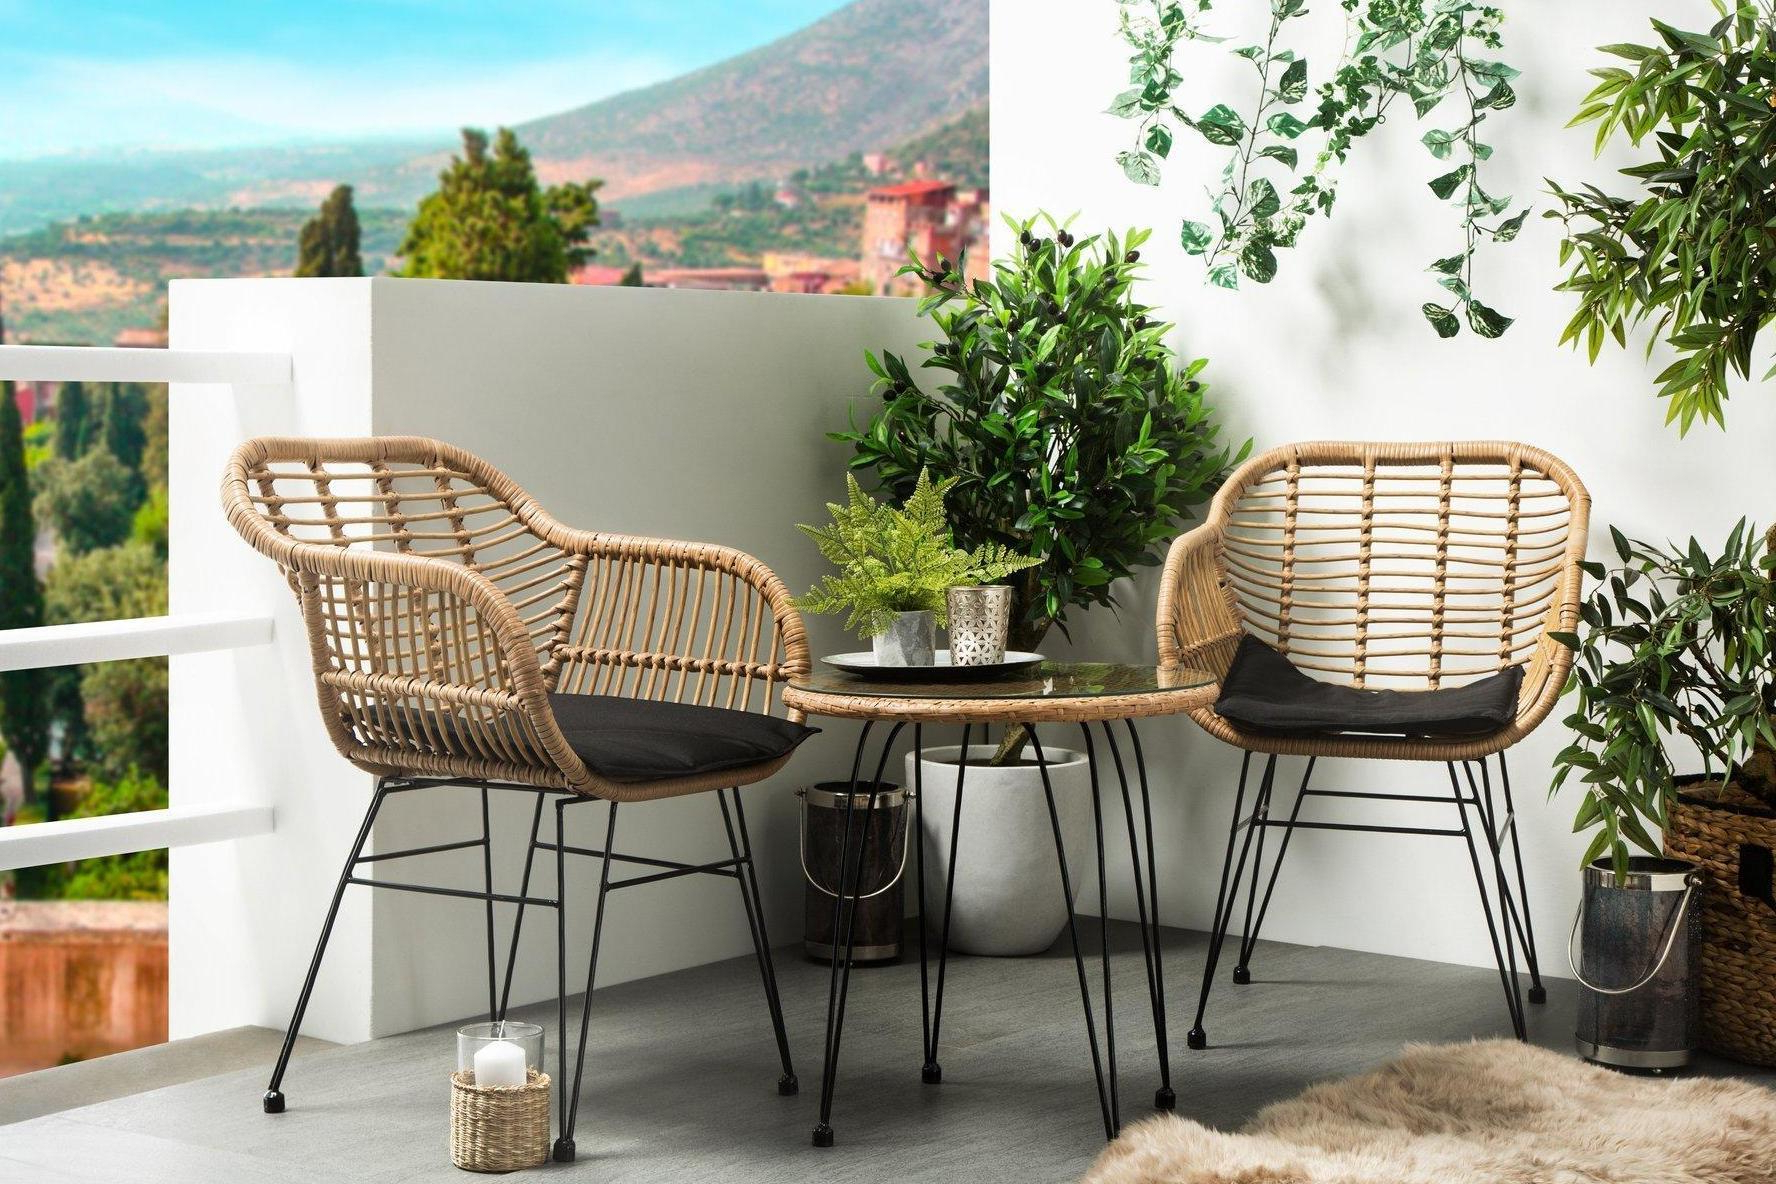 Current Best Small Outdoor Table And Chair Sets  (View 6 of 25)